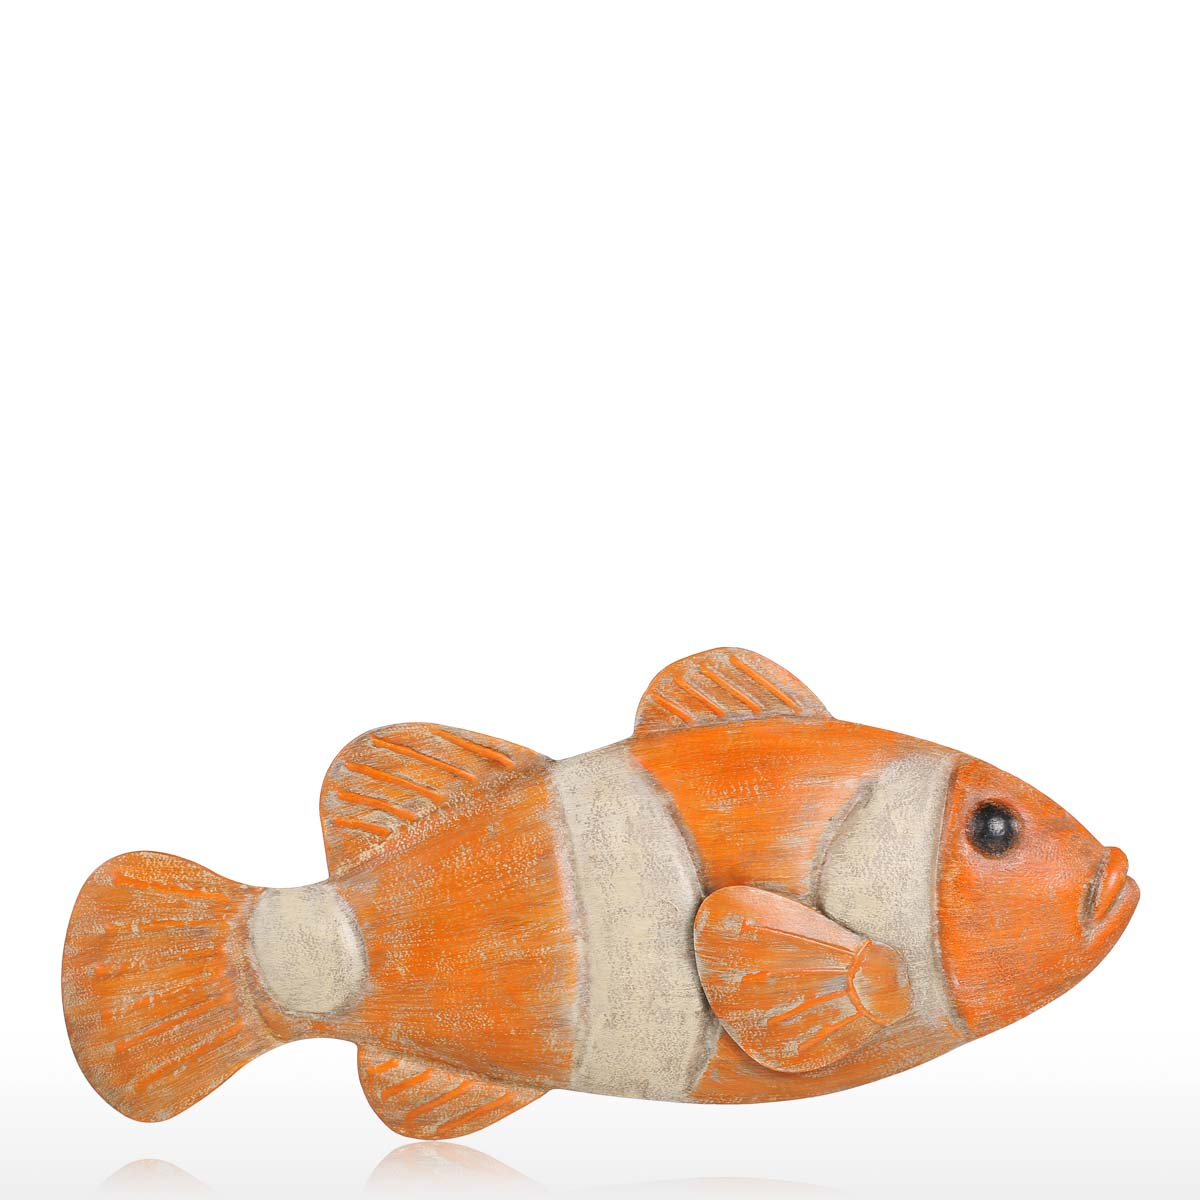 Best and cheap color3 fish wall hanging 1 iron wall decor for Fish wall hanging